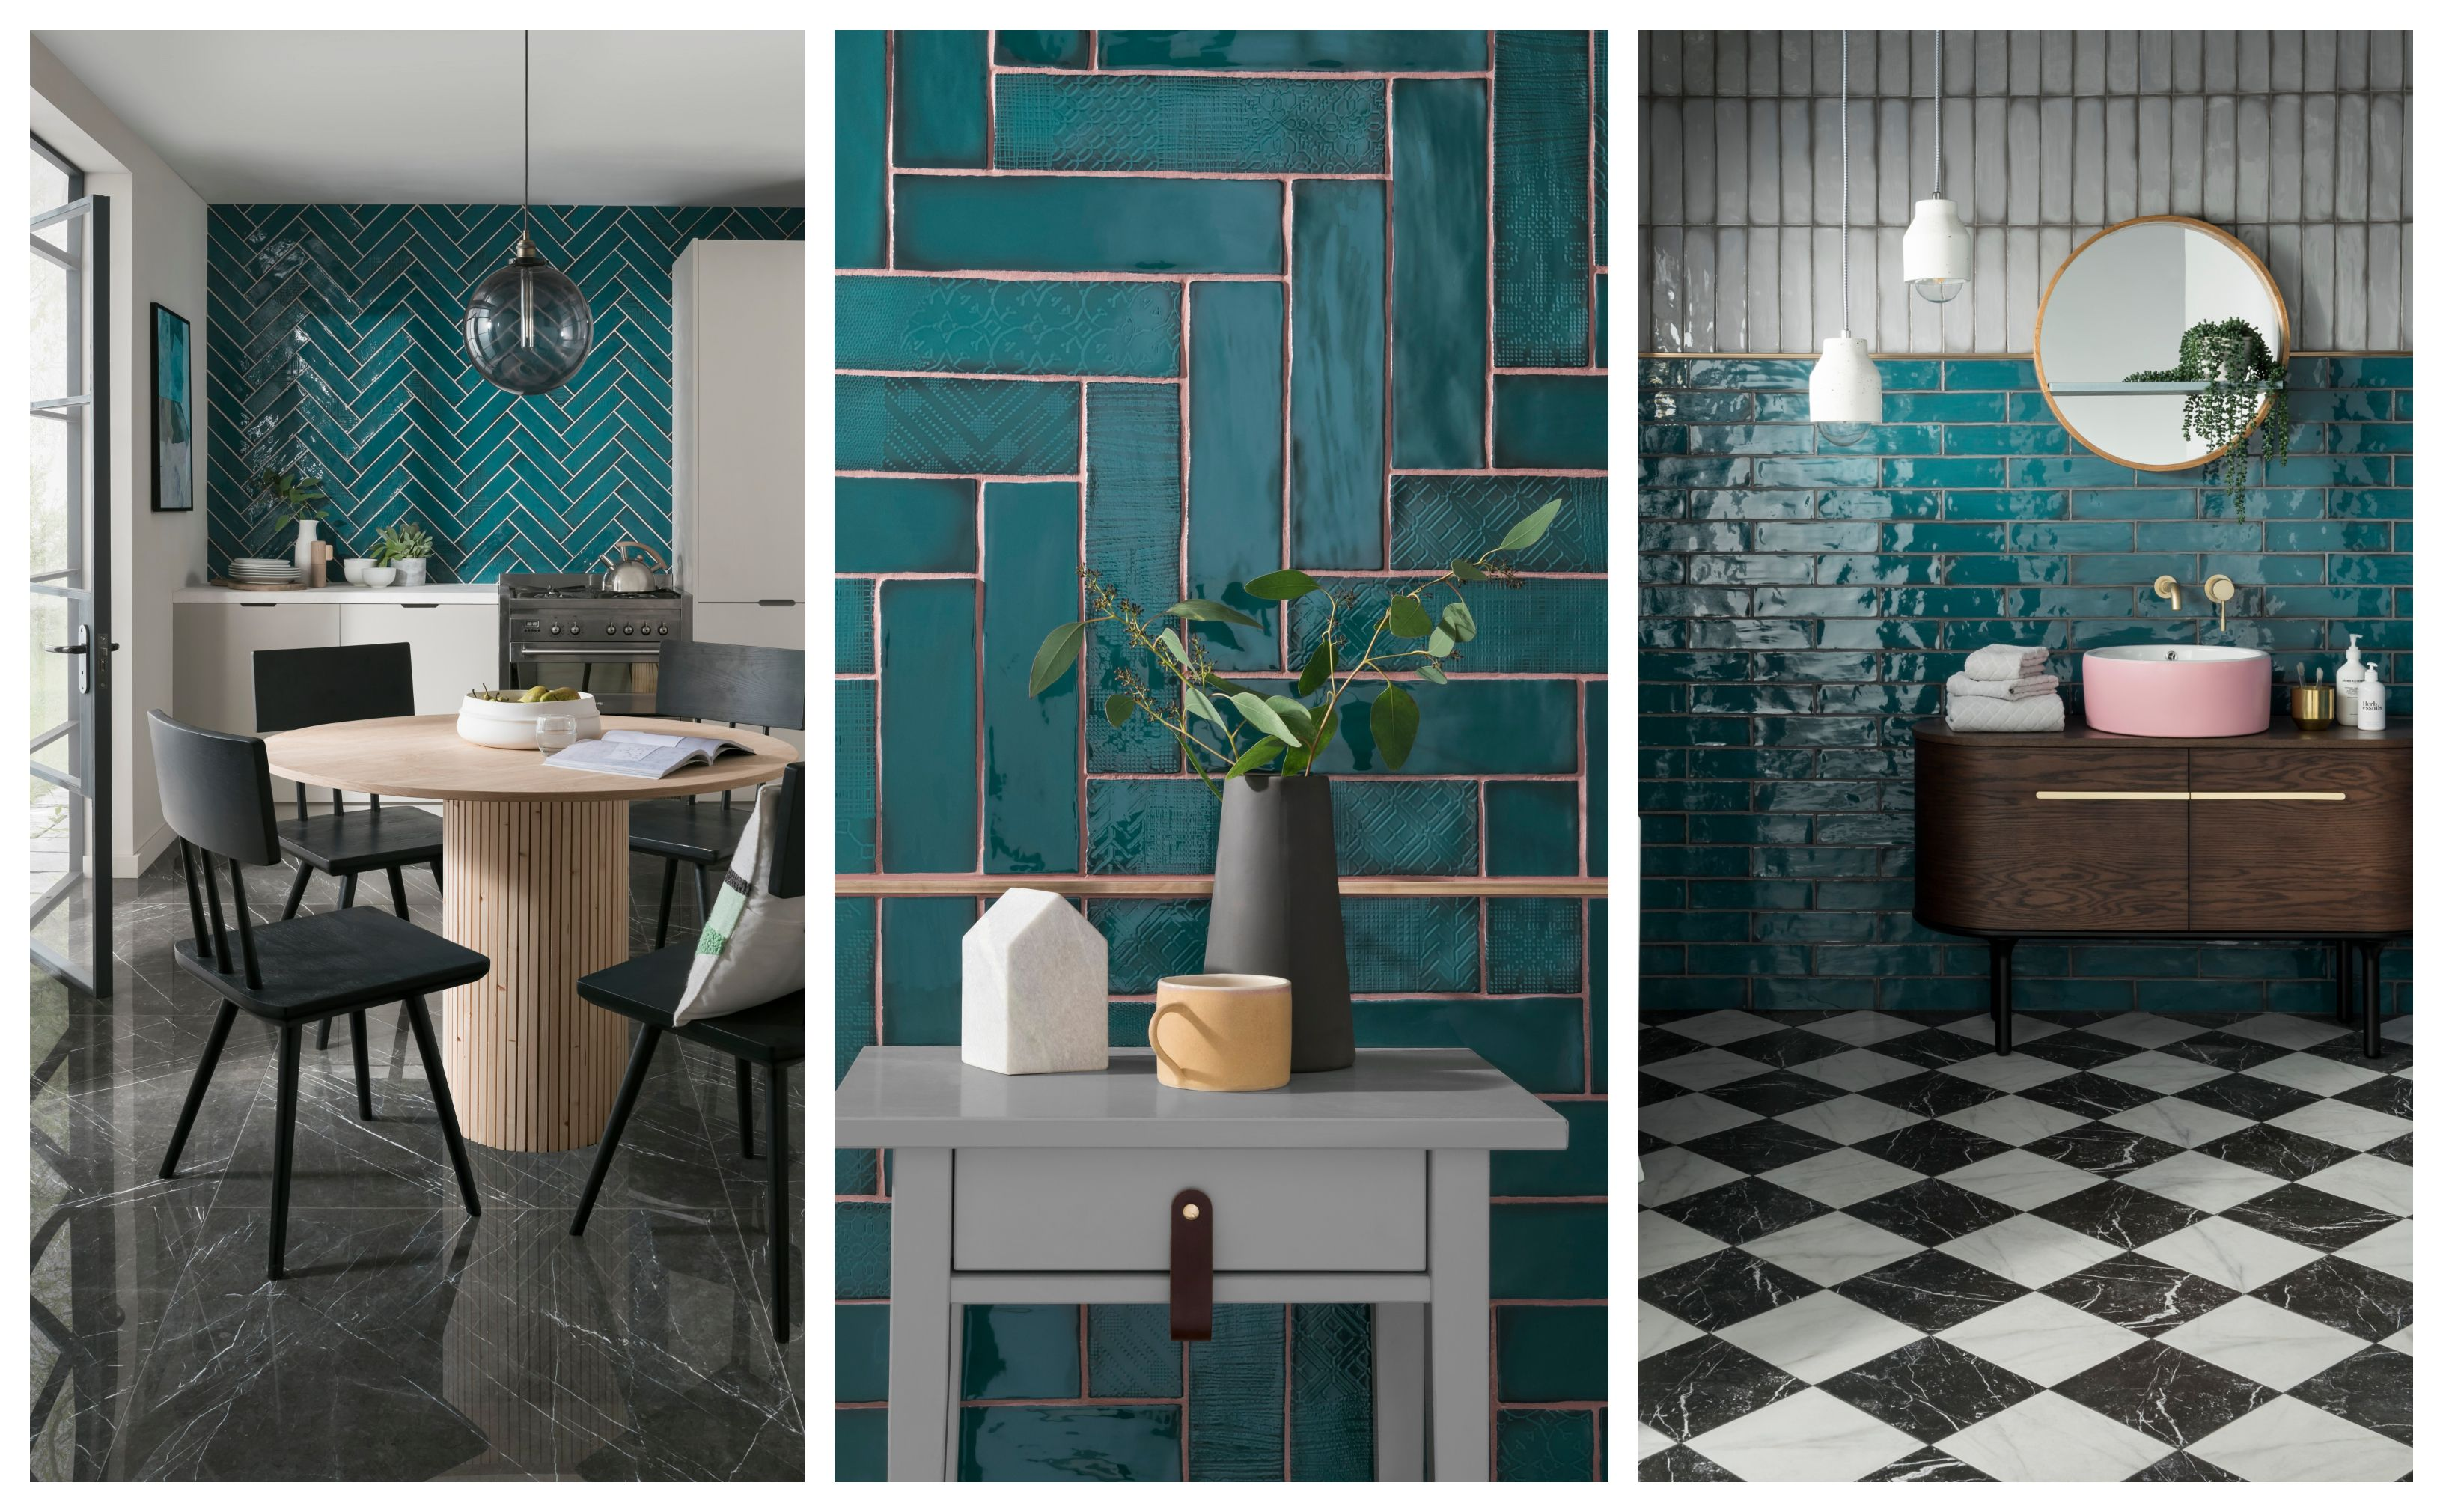 Topps Tiles Lampas Peacock unveiled as Tile of the Year